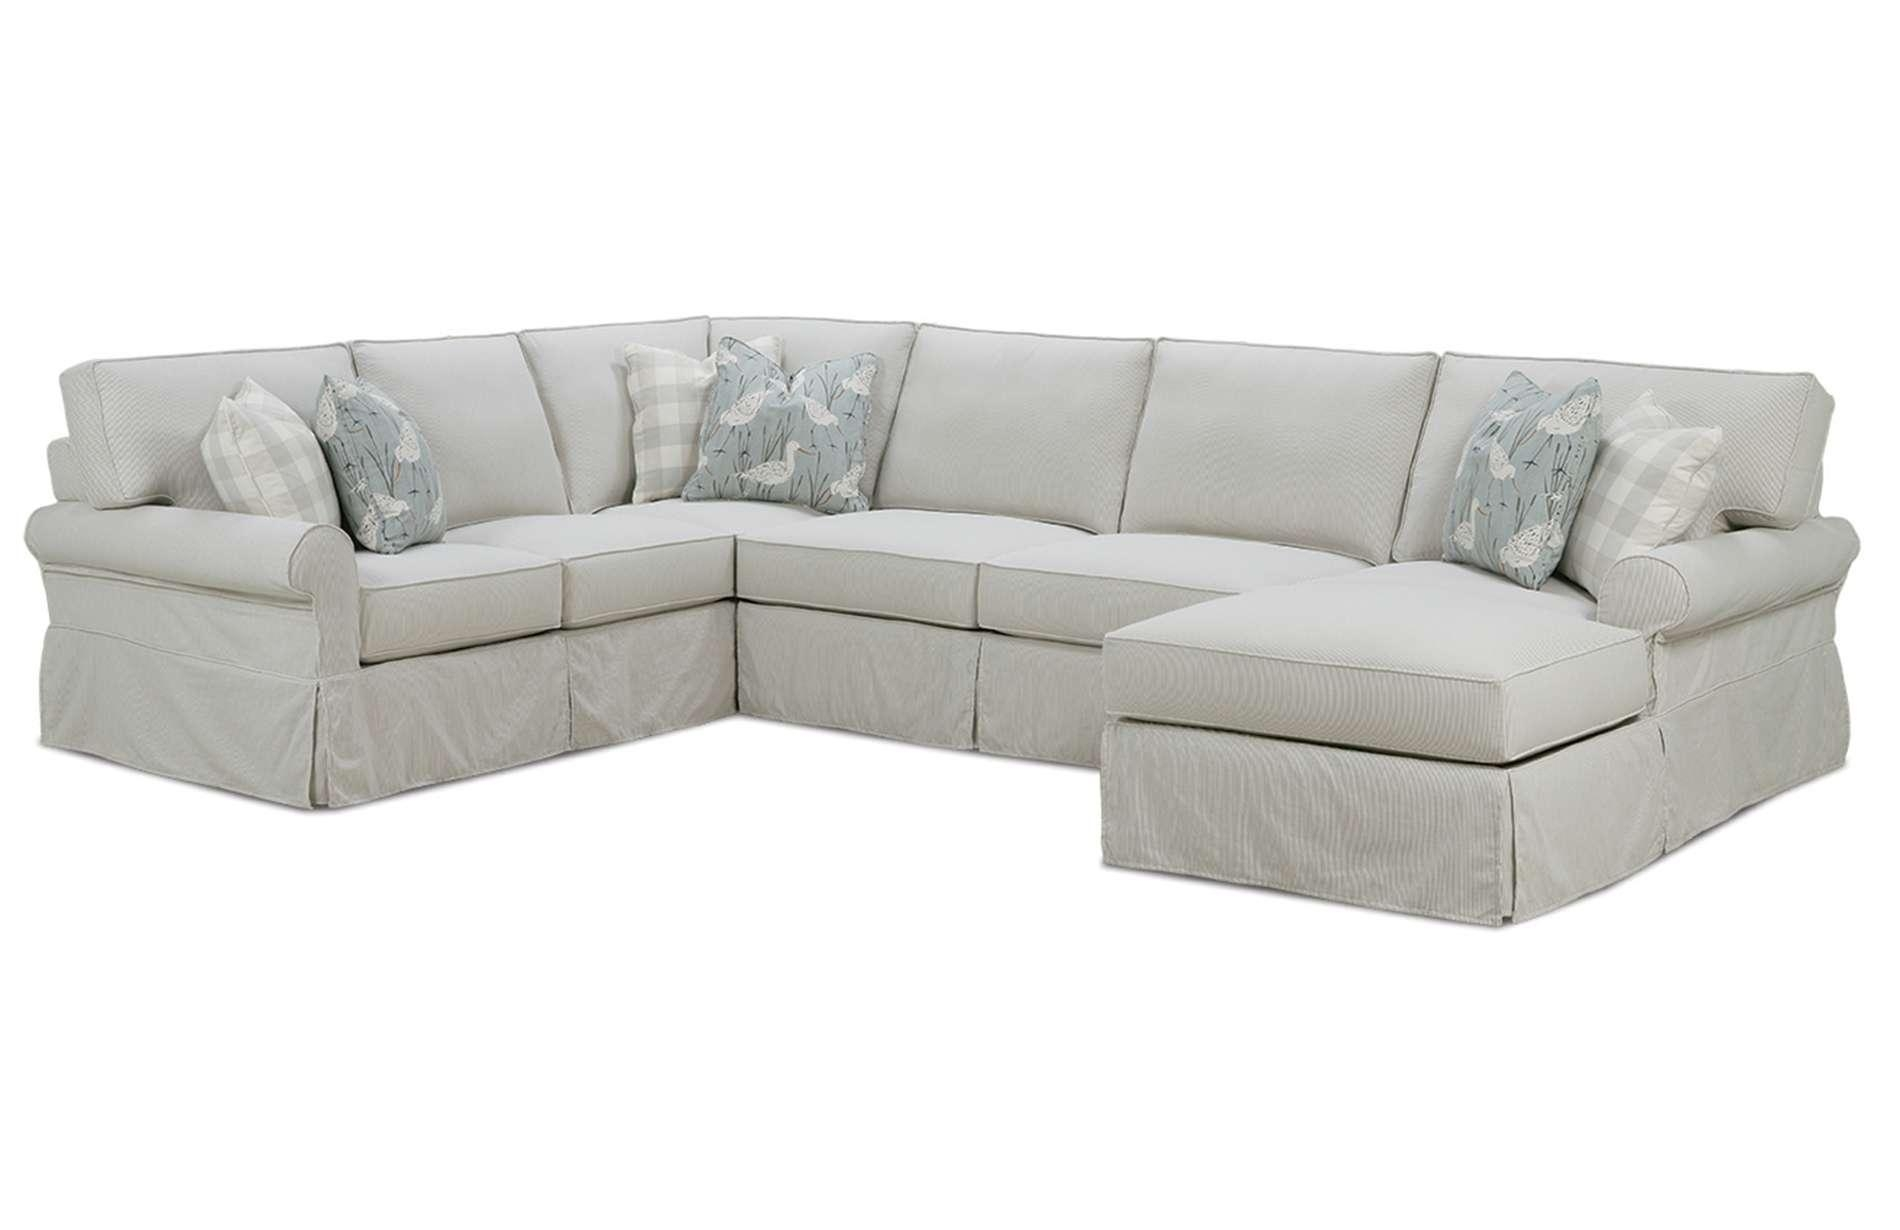 Sofas Center : Sectional Diy Slipcover For Sofa With Chaisedys In Chaise Sectional Slipcover (Image 14 of 15)